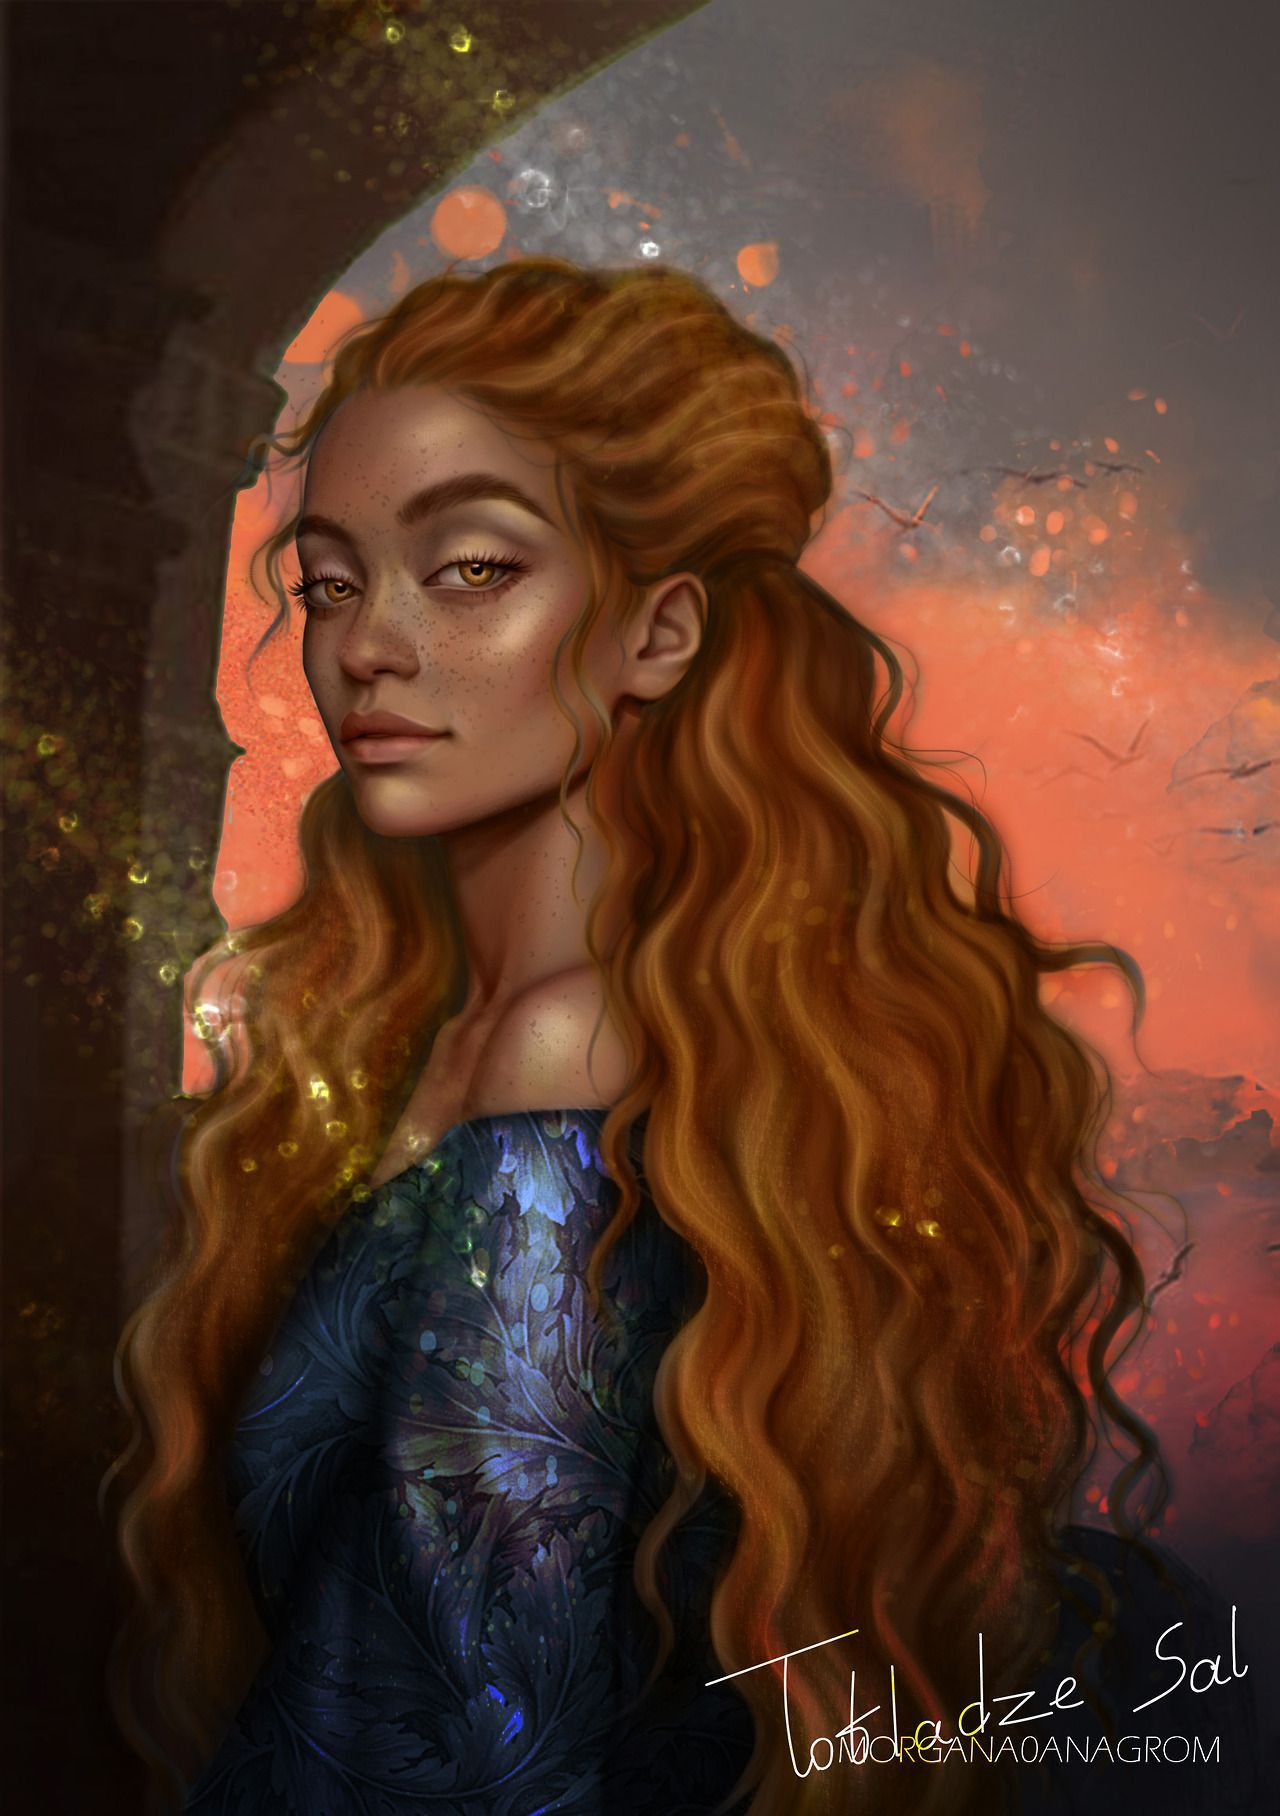 Yrene Westfall With Images Throne Of Glass Series Throne Of